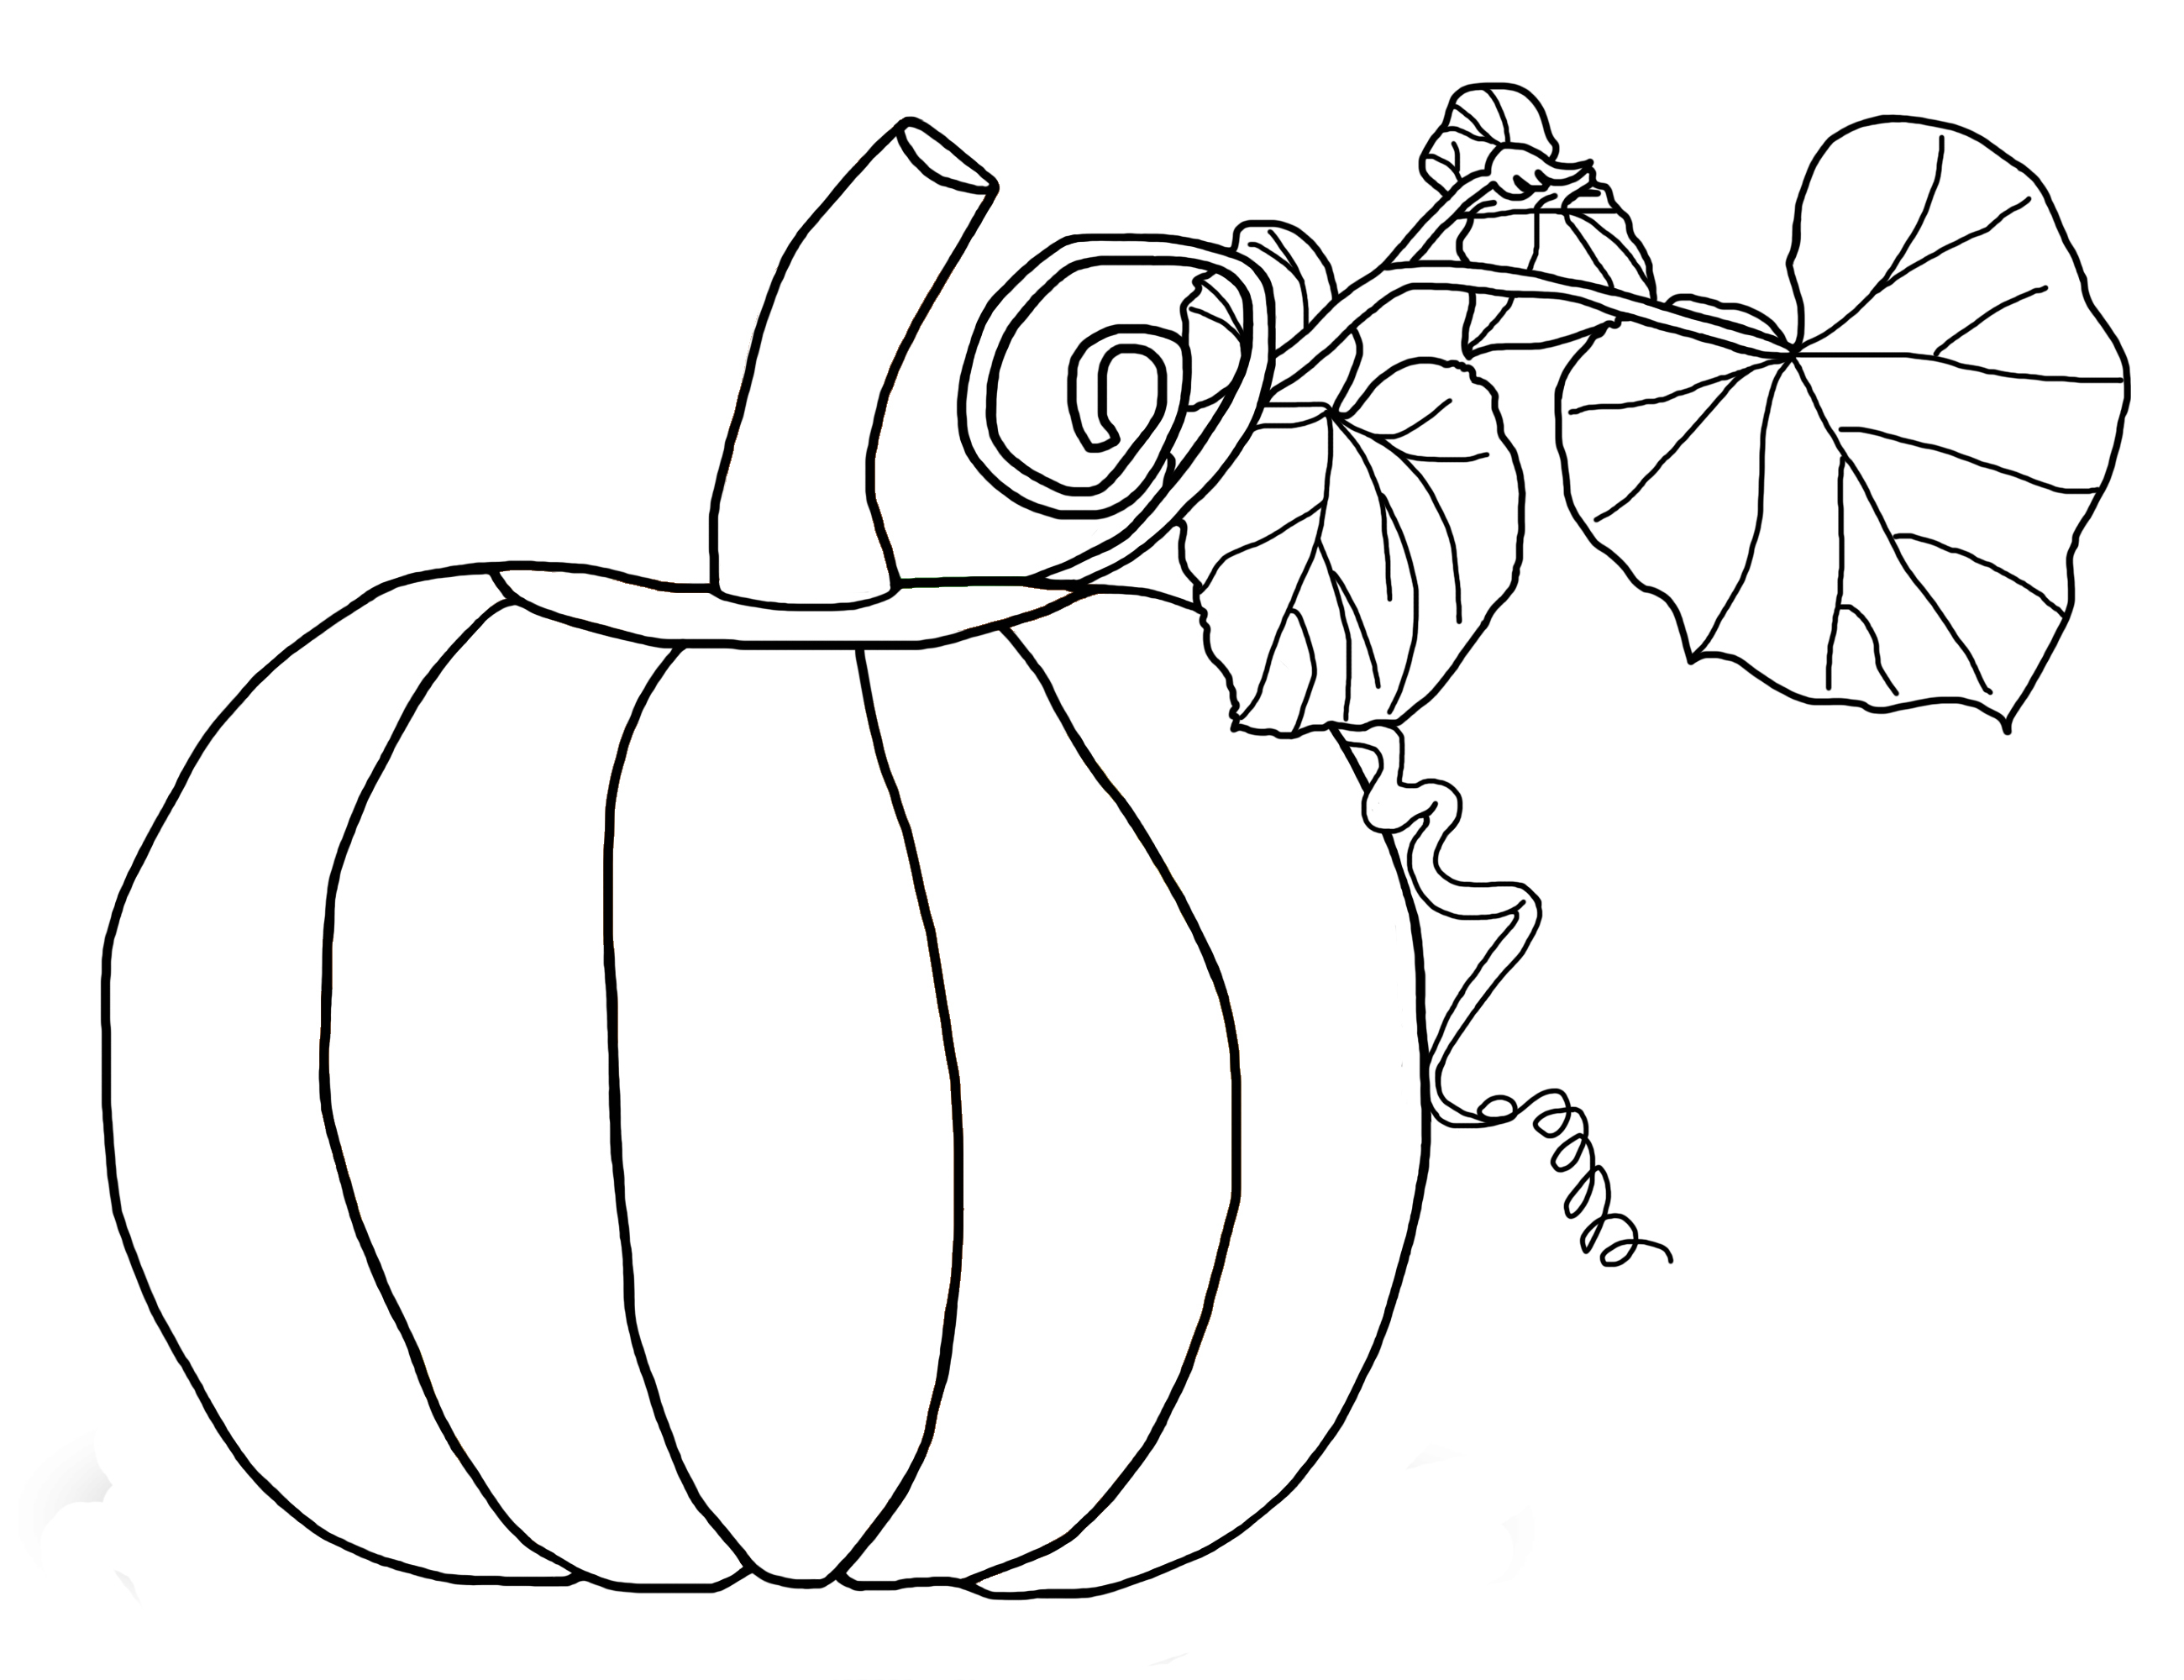 Printable coloring pages pumpkins -  Coloring Page Pumpkin